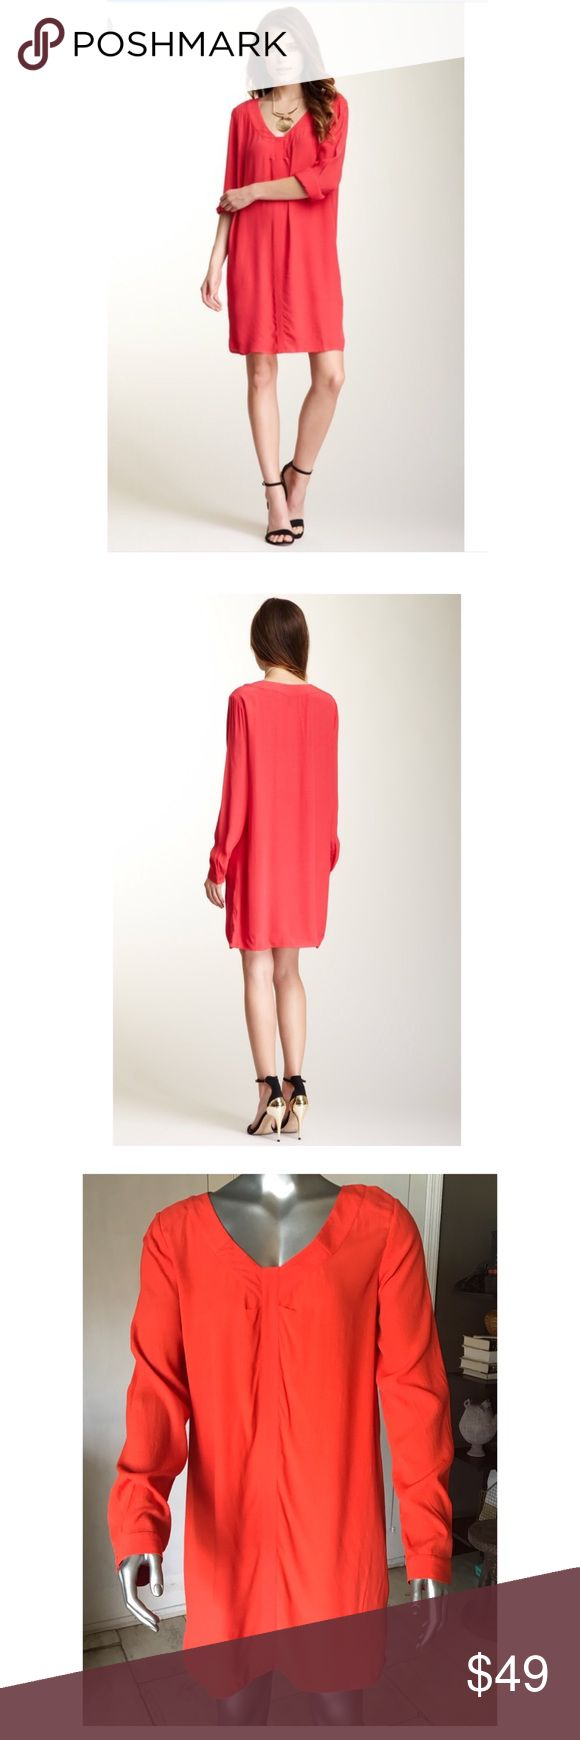 BCBG MAXAZRIA Lipstick Red Levin Tunic Dress BCBG MAXAZRIA lipstick red tunic dress. Lovely top stitch details.  Very well made. Fits great. Size M. No flaws. BCBGMaxAzria Dresses